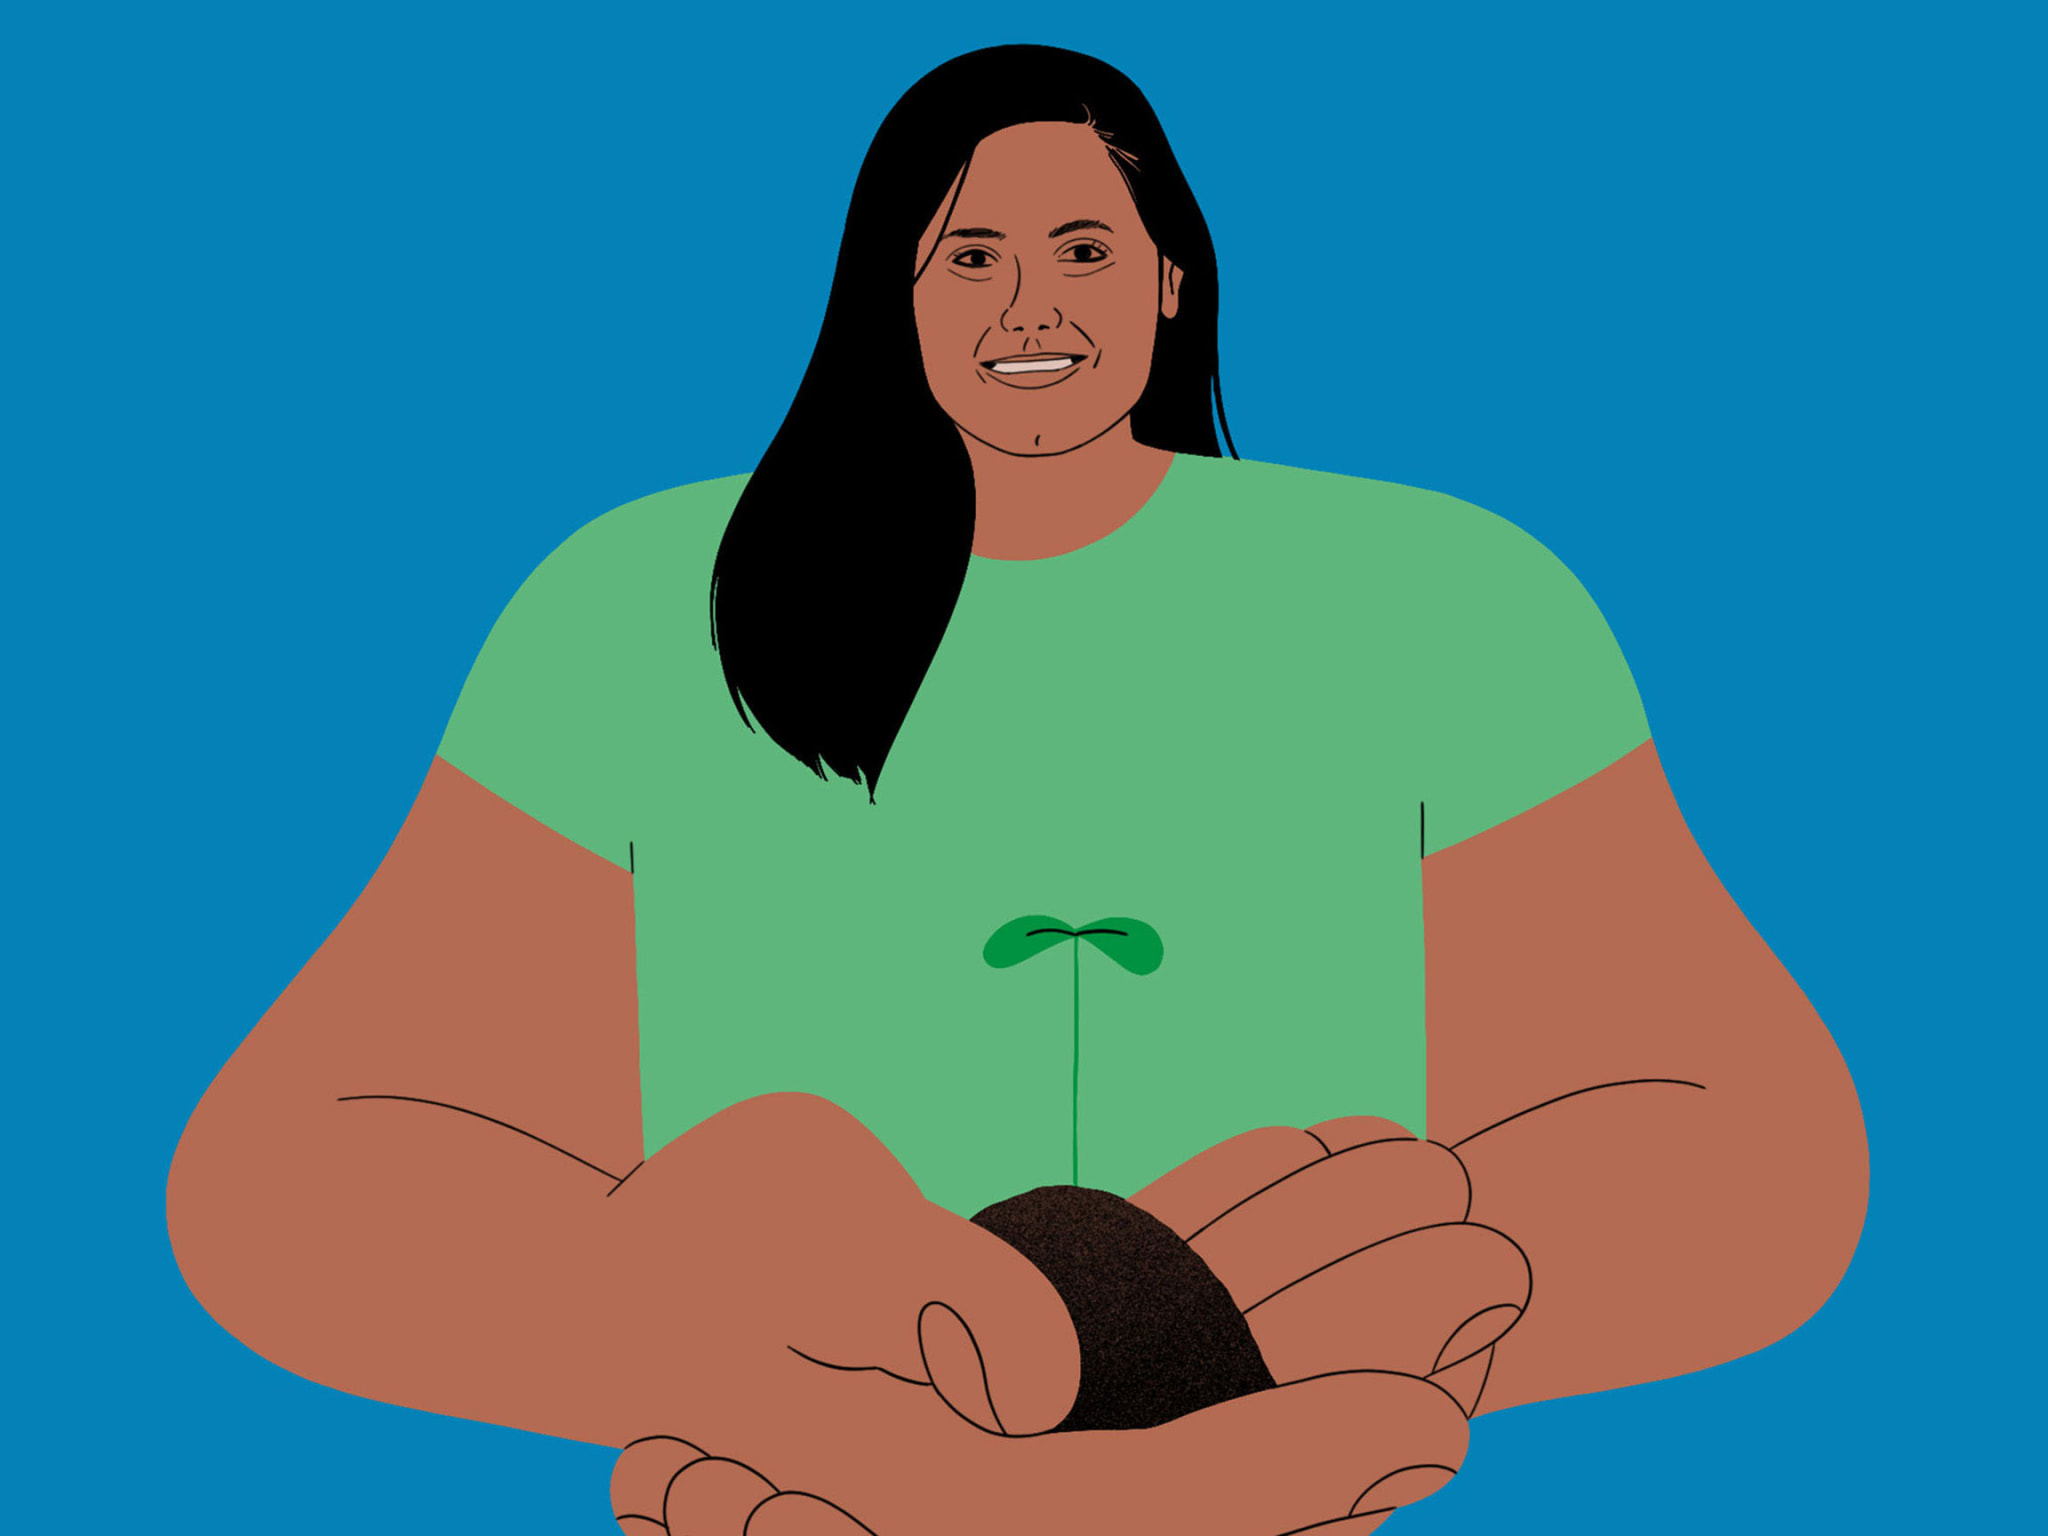 illustration of woman holding soil and a growing plant in her hands